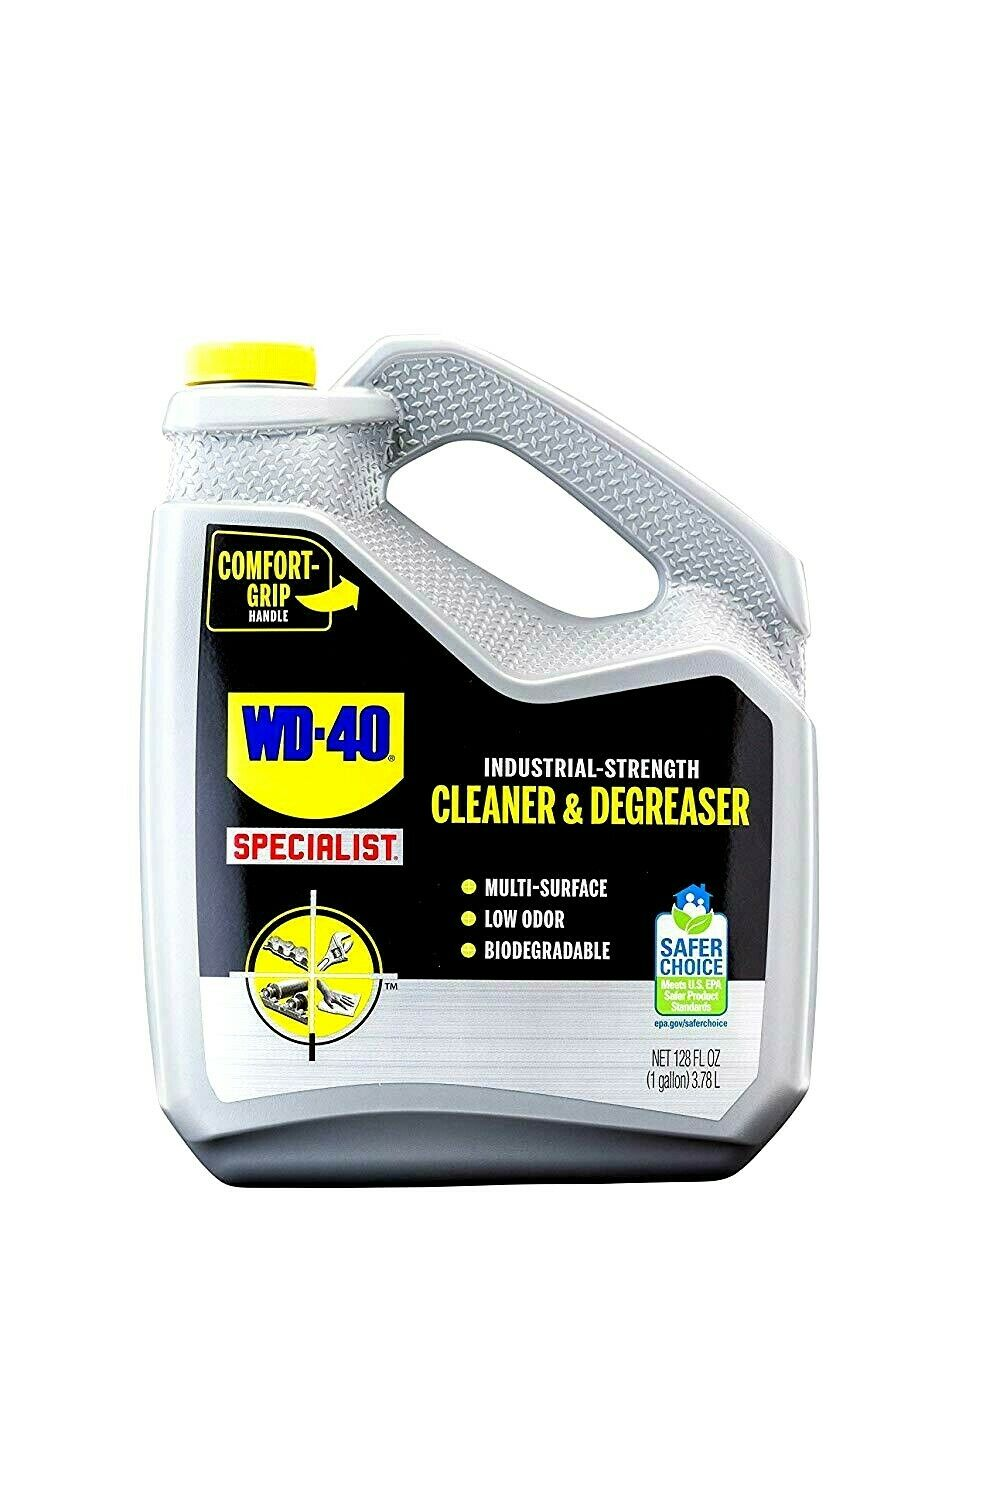 WD-40 300363 Specialist Industrial-Strength Cleaner & Degrea